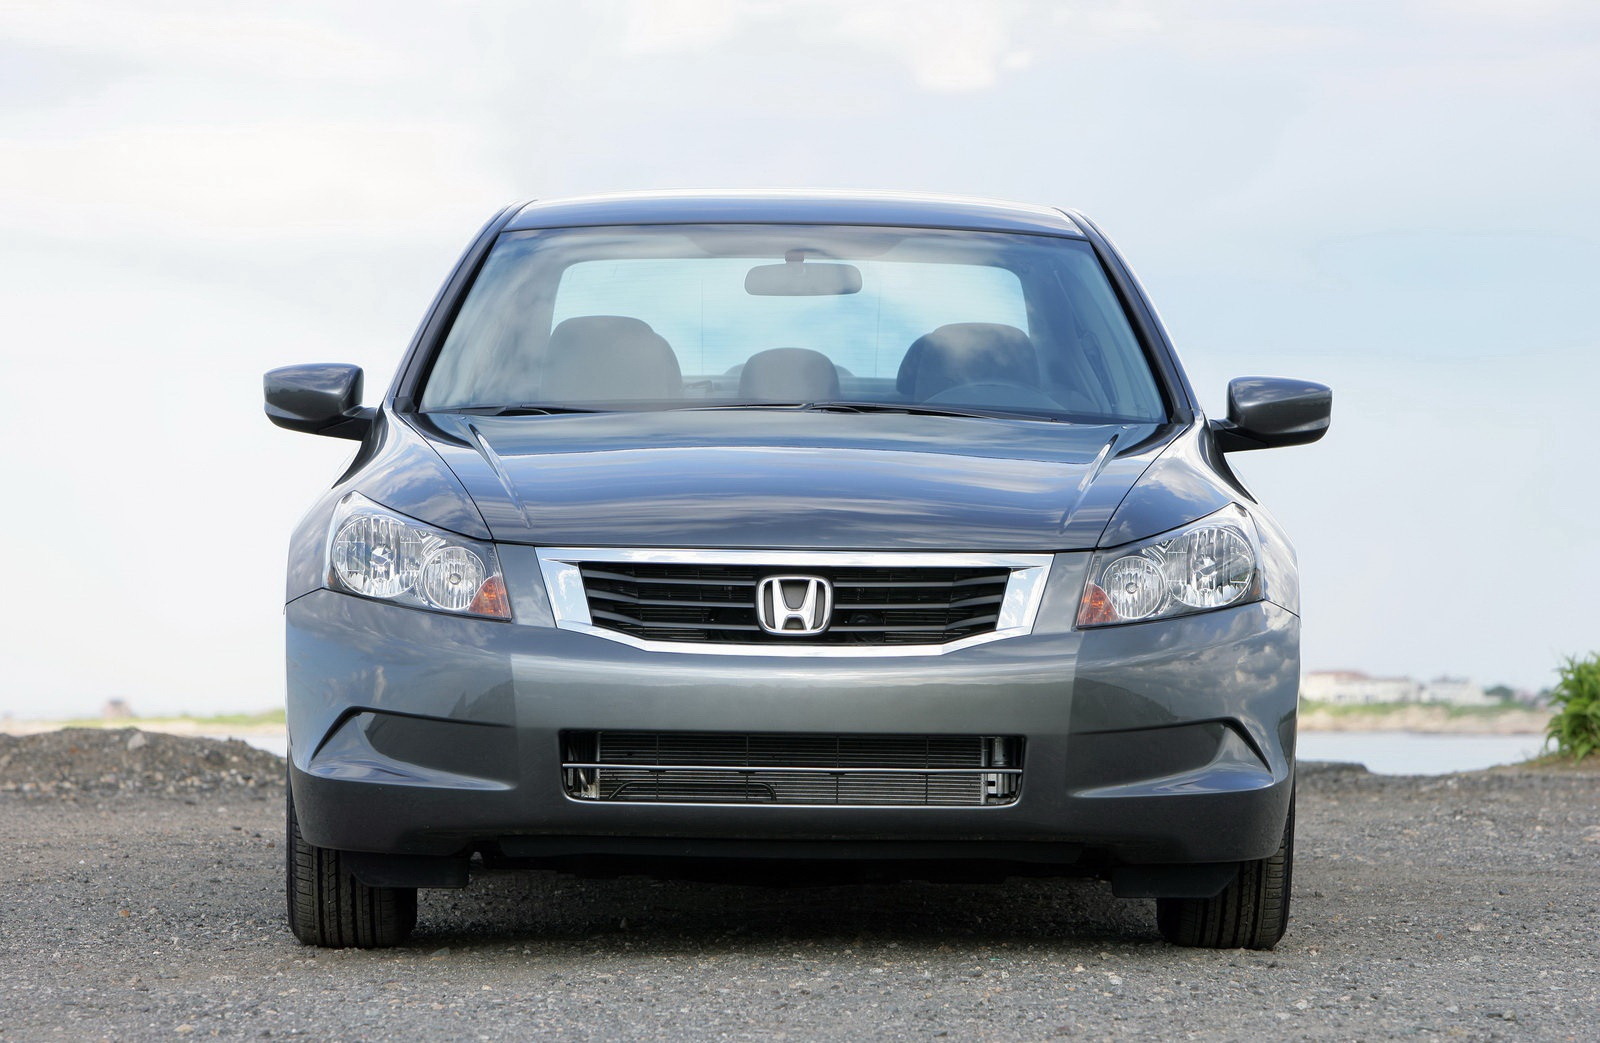 Honda Accord 2012 Exterior Front End